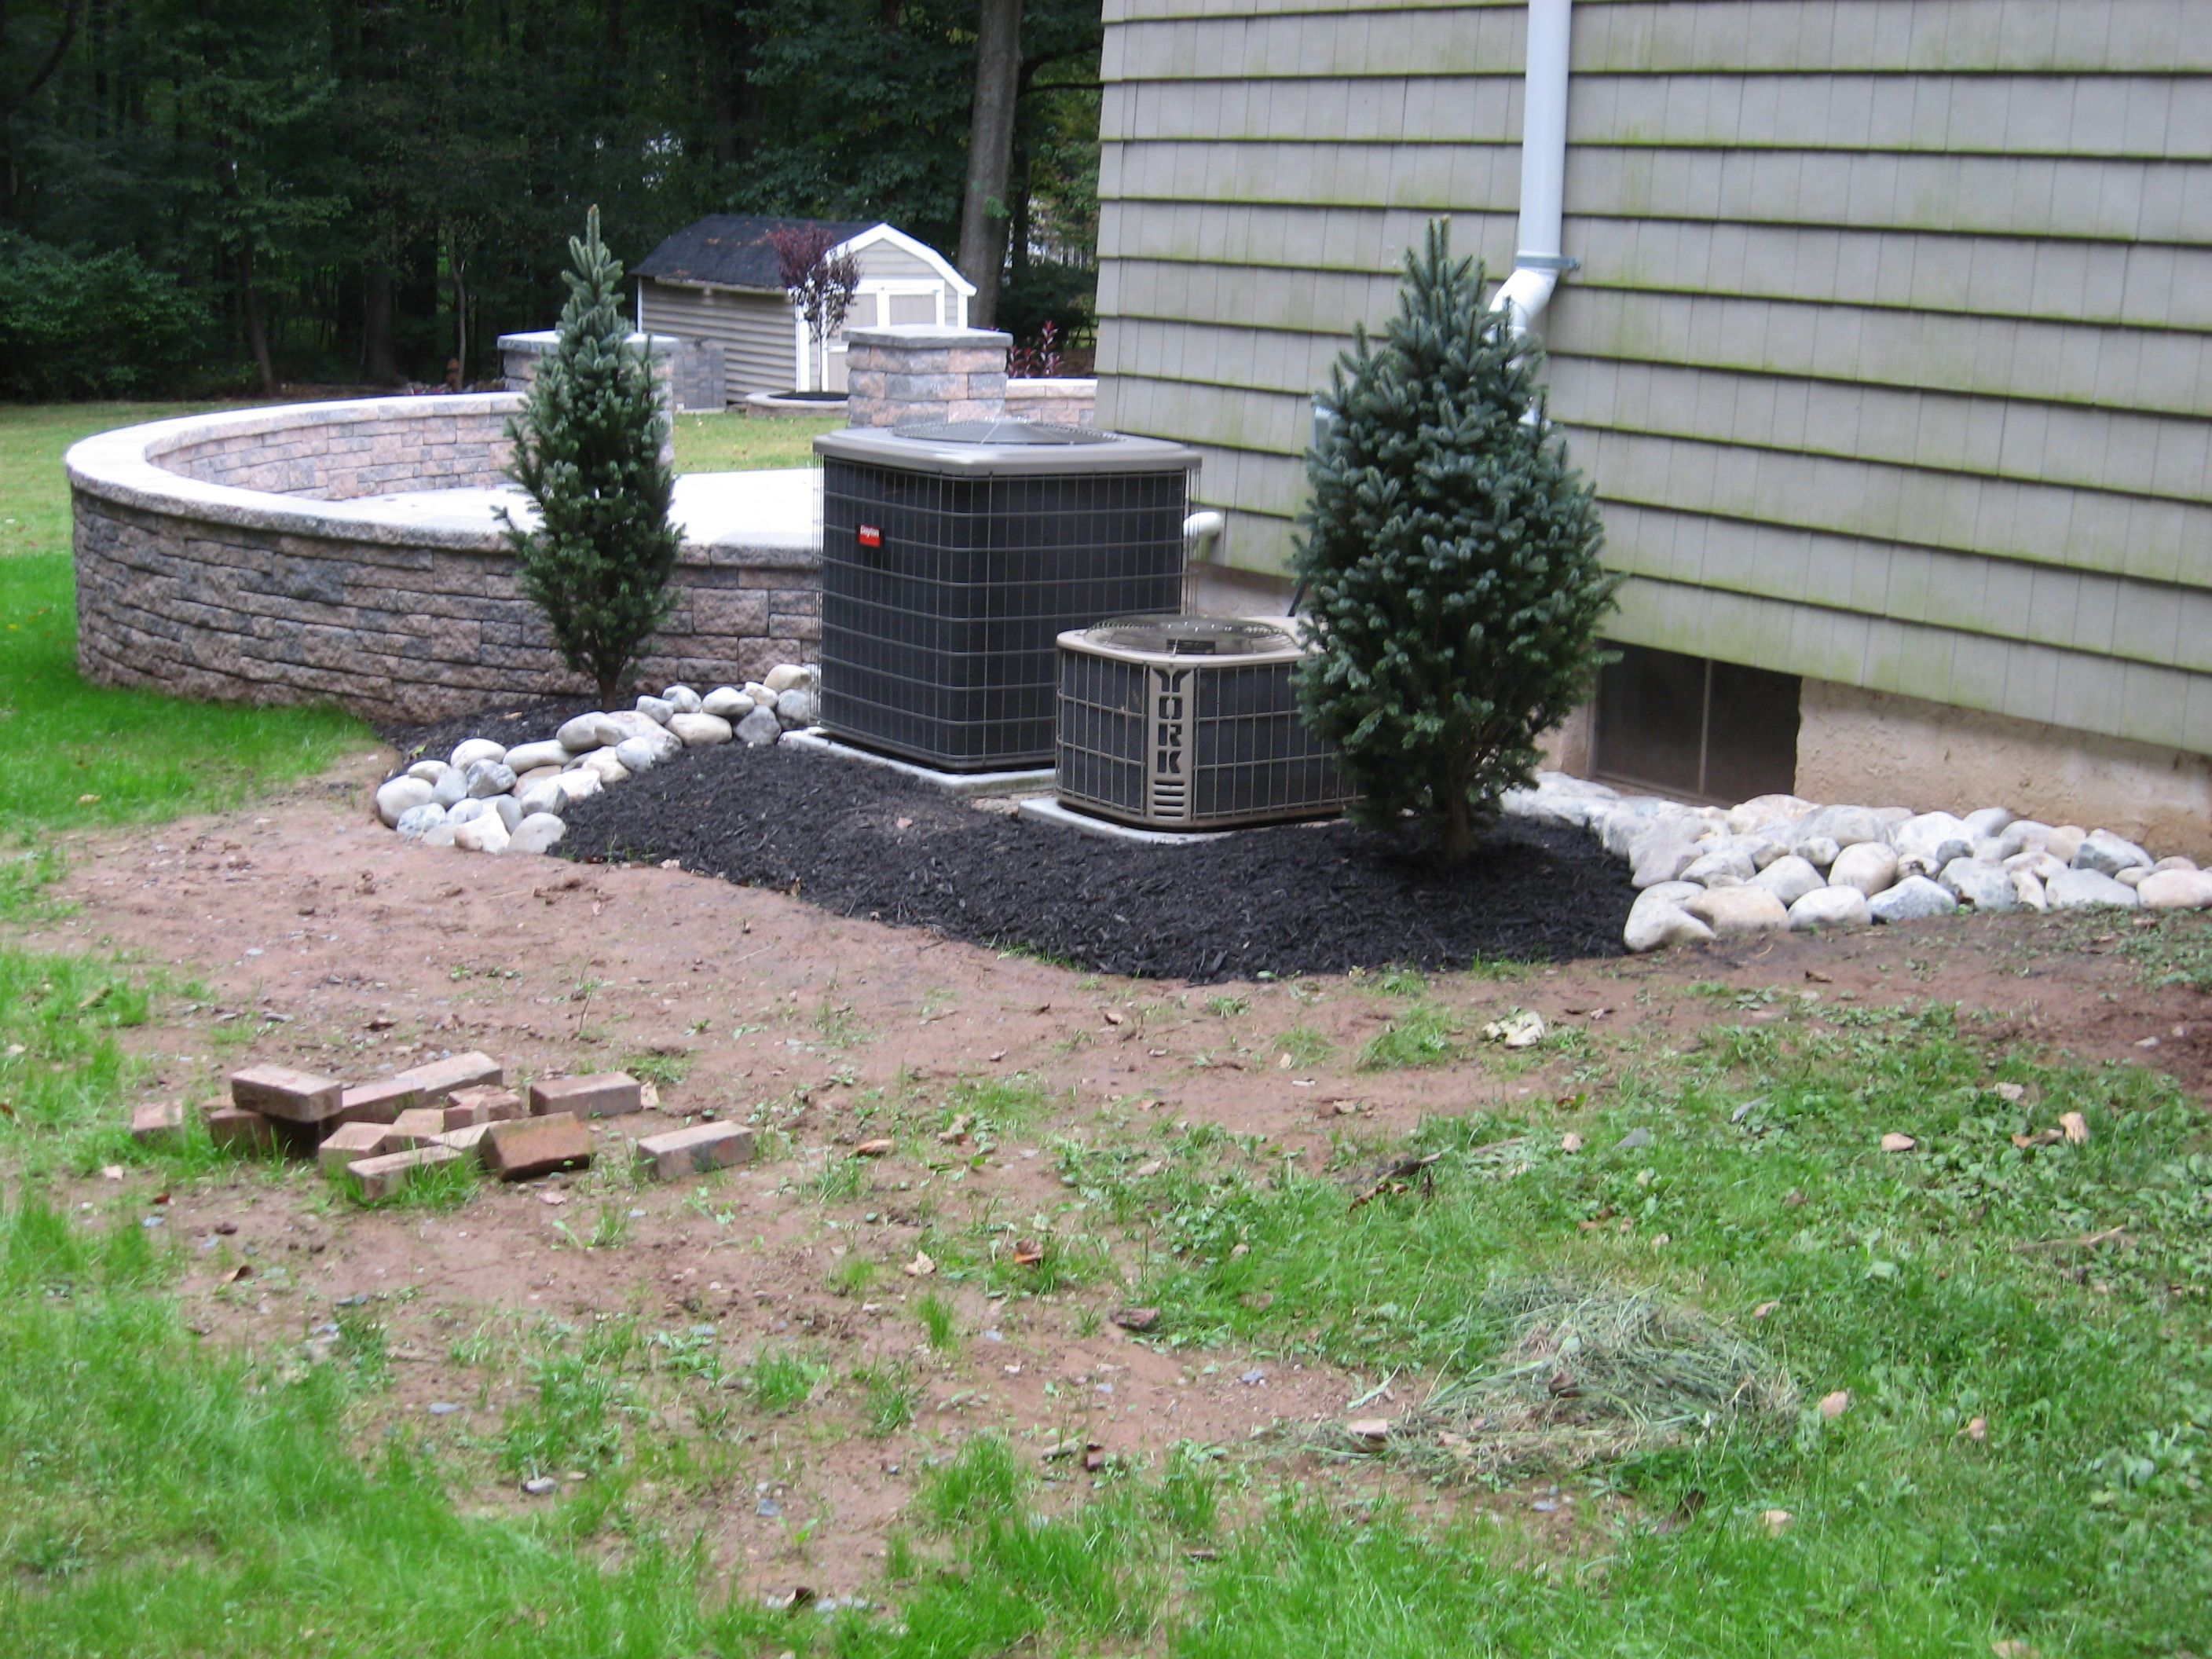 Landscaping Around Patio & Air Conditioners